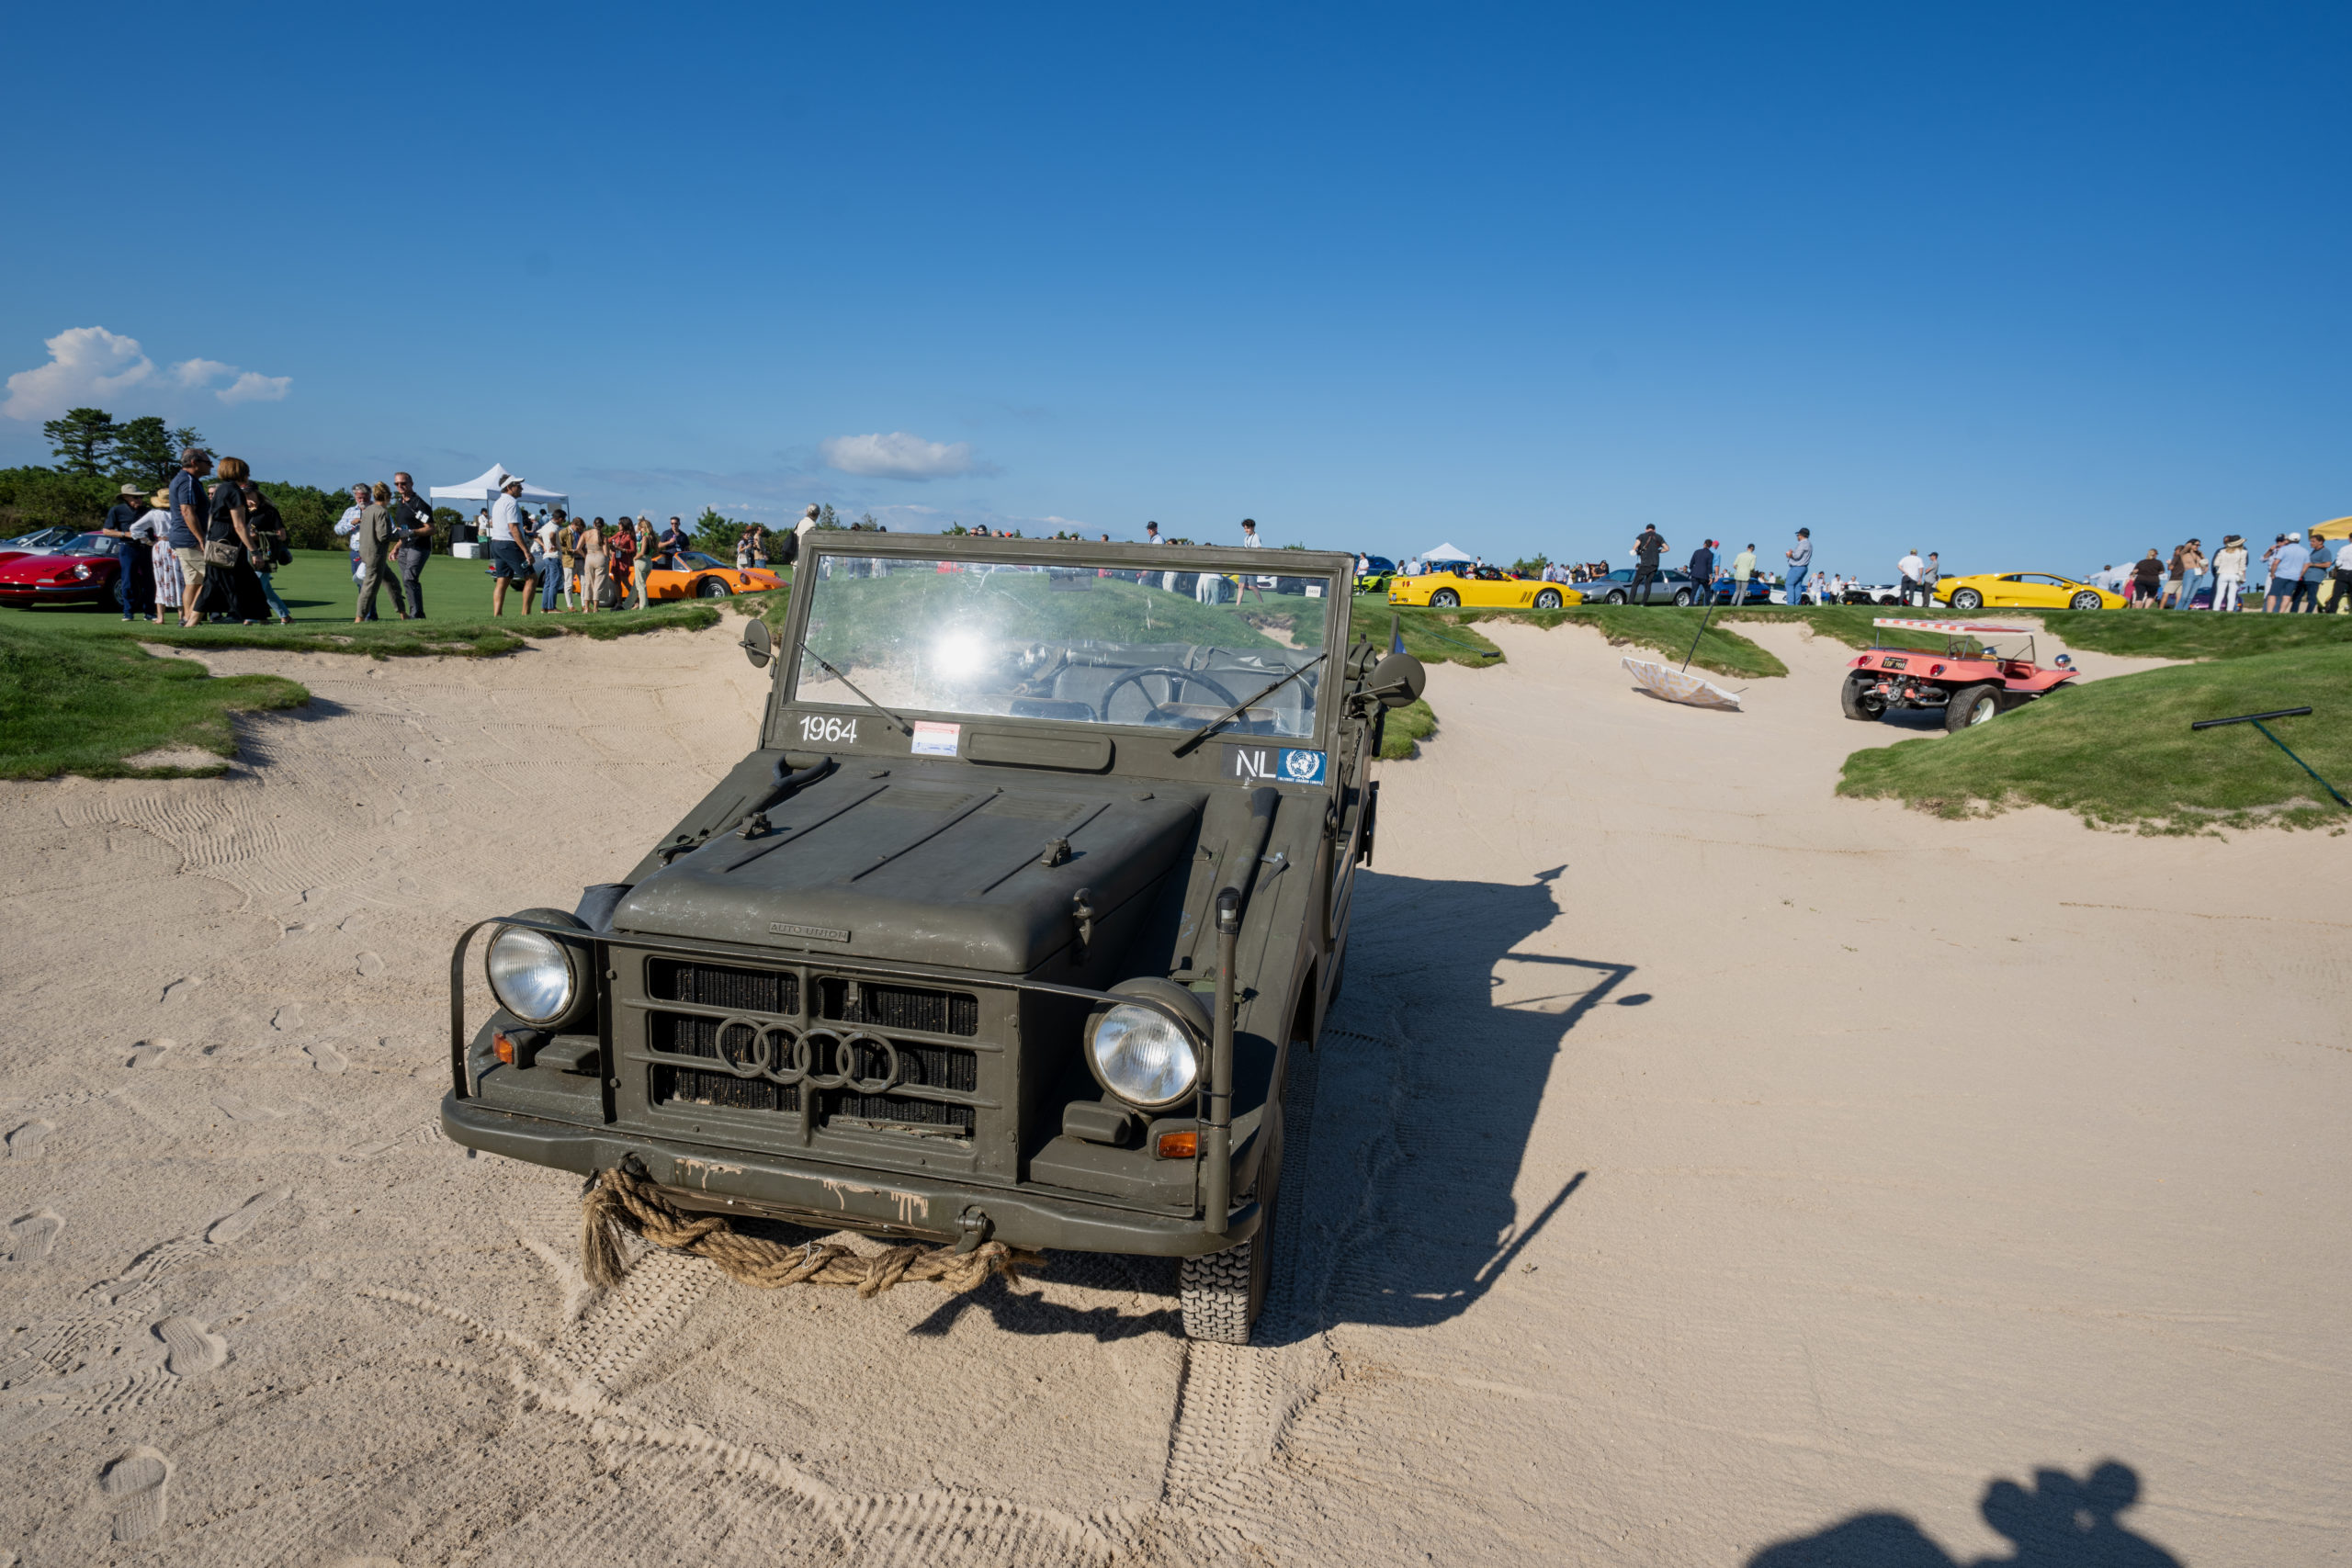 A 1964 Audi in one of the sand traps at The Bridge.